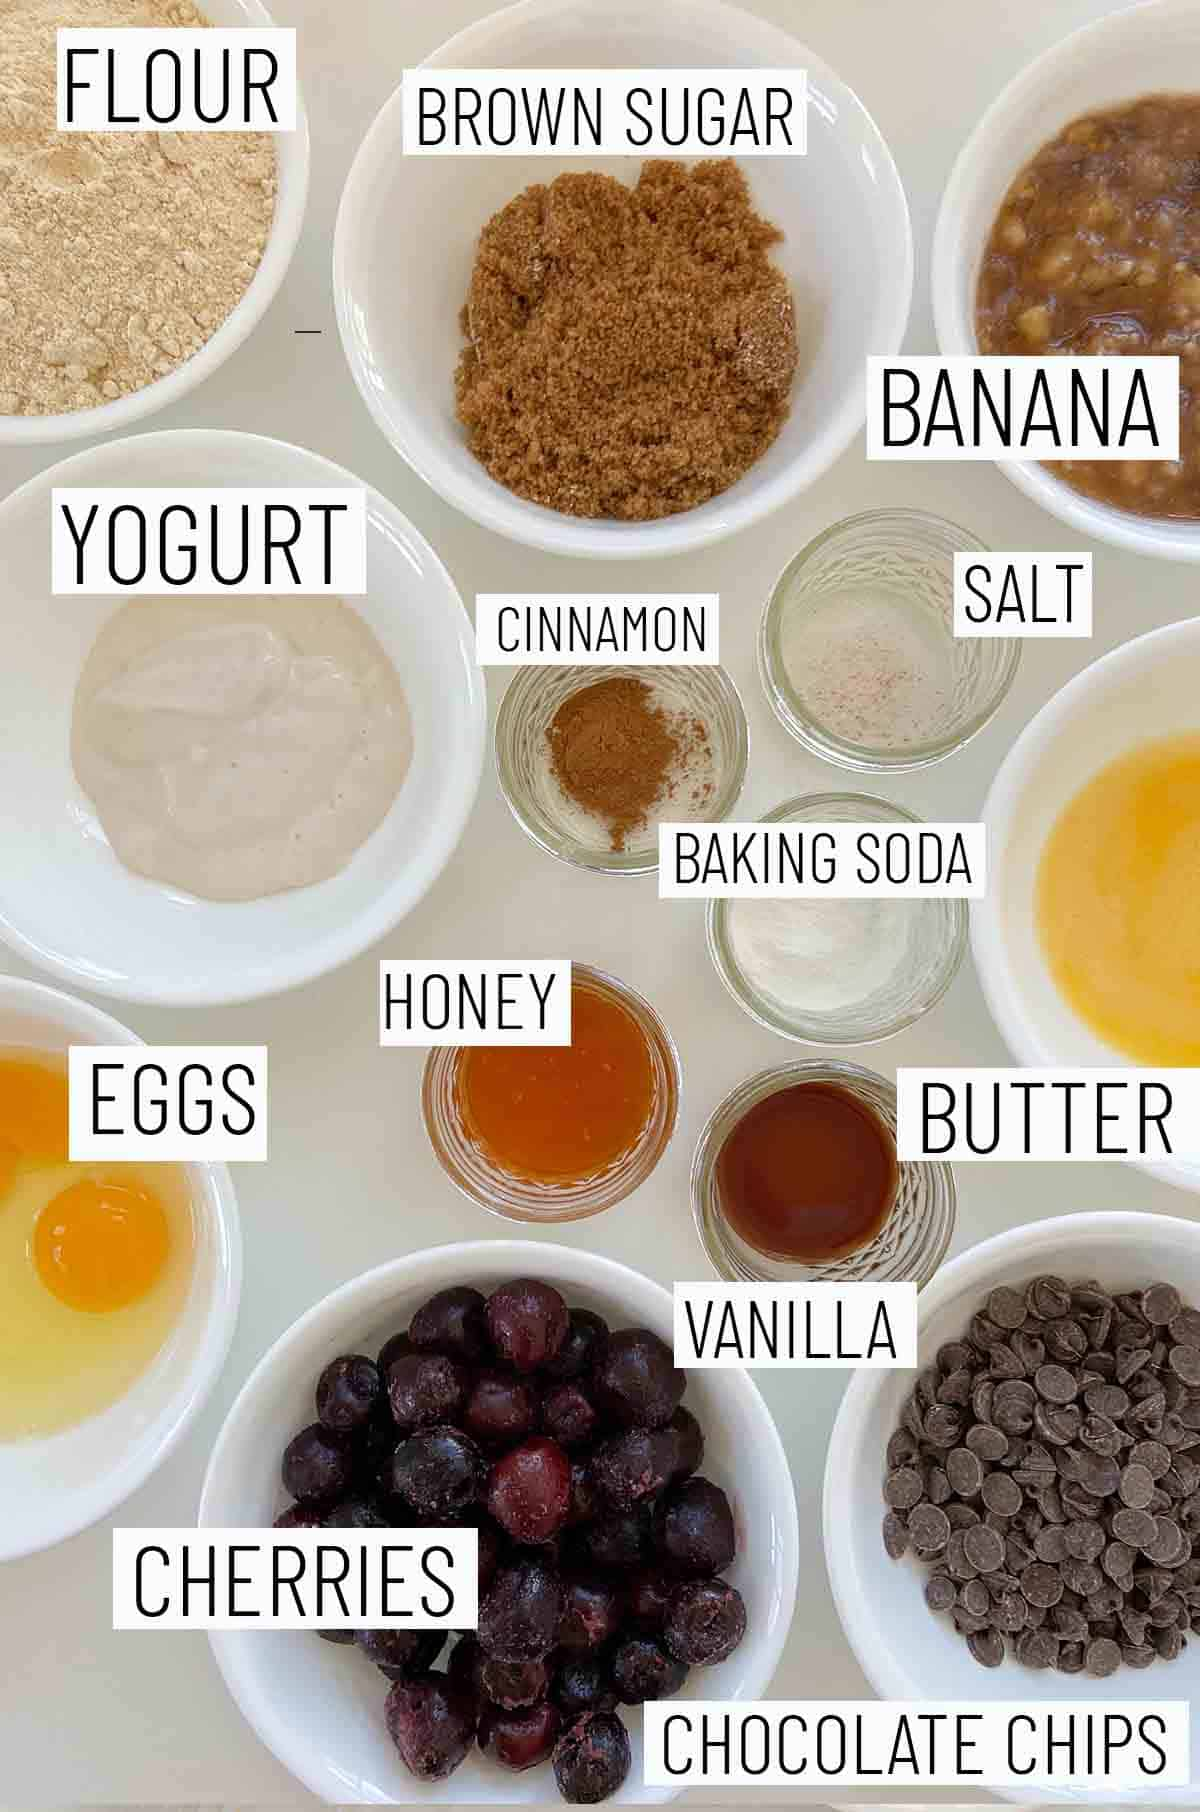 Flat lay image of portioned recipe ingredients including chocolate chips, cherries, eggs, butter, vanilla, honey, baking soda, salt, cinnamon, yogurt, banana and flour.